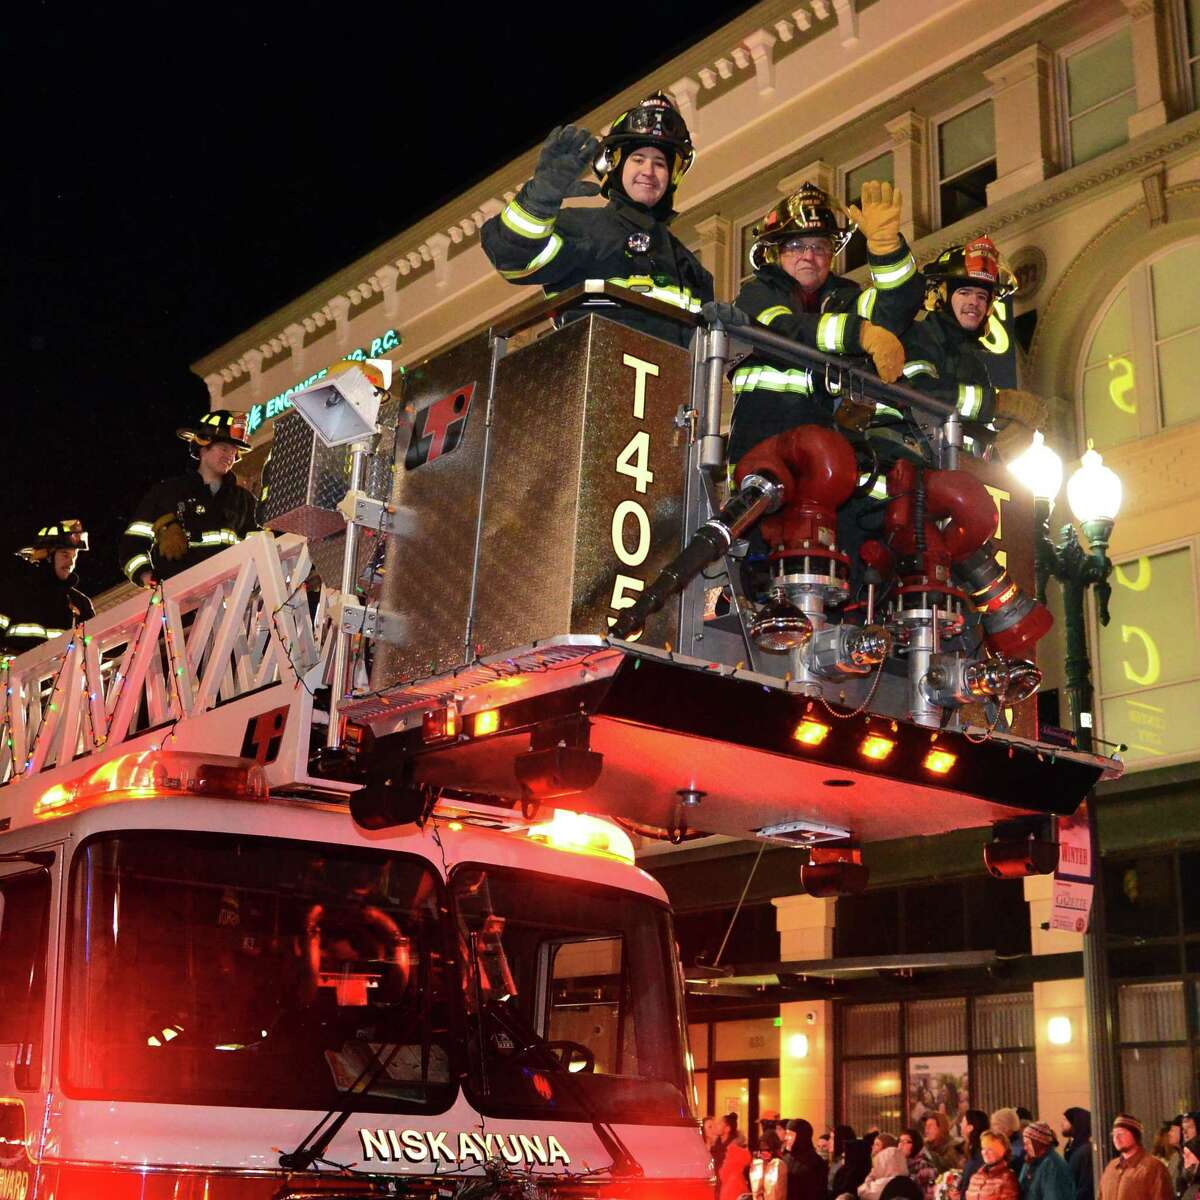 Niskayuna firefighters wave to the crowds during the 46th Annual Gazette Holiday Parade Saturday Nov. 23, 2013, in Schenectady, NY. (John Carl D'Annibale / Times Union)